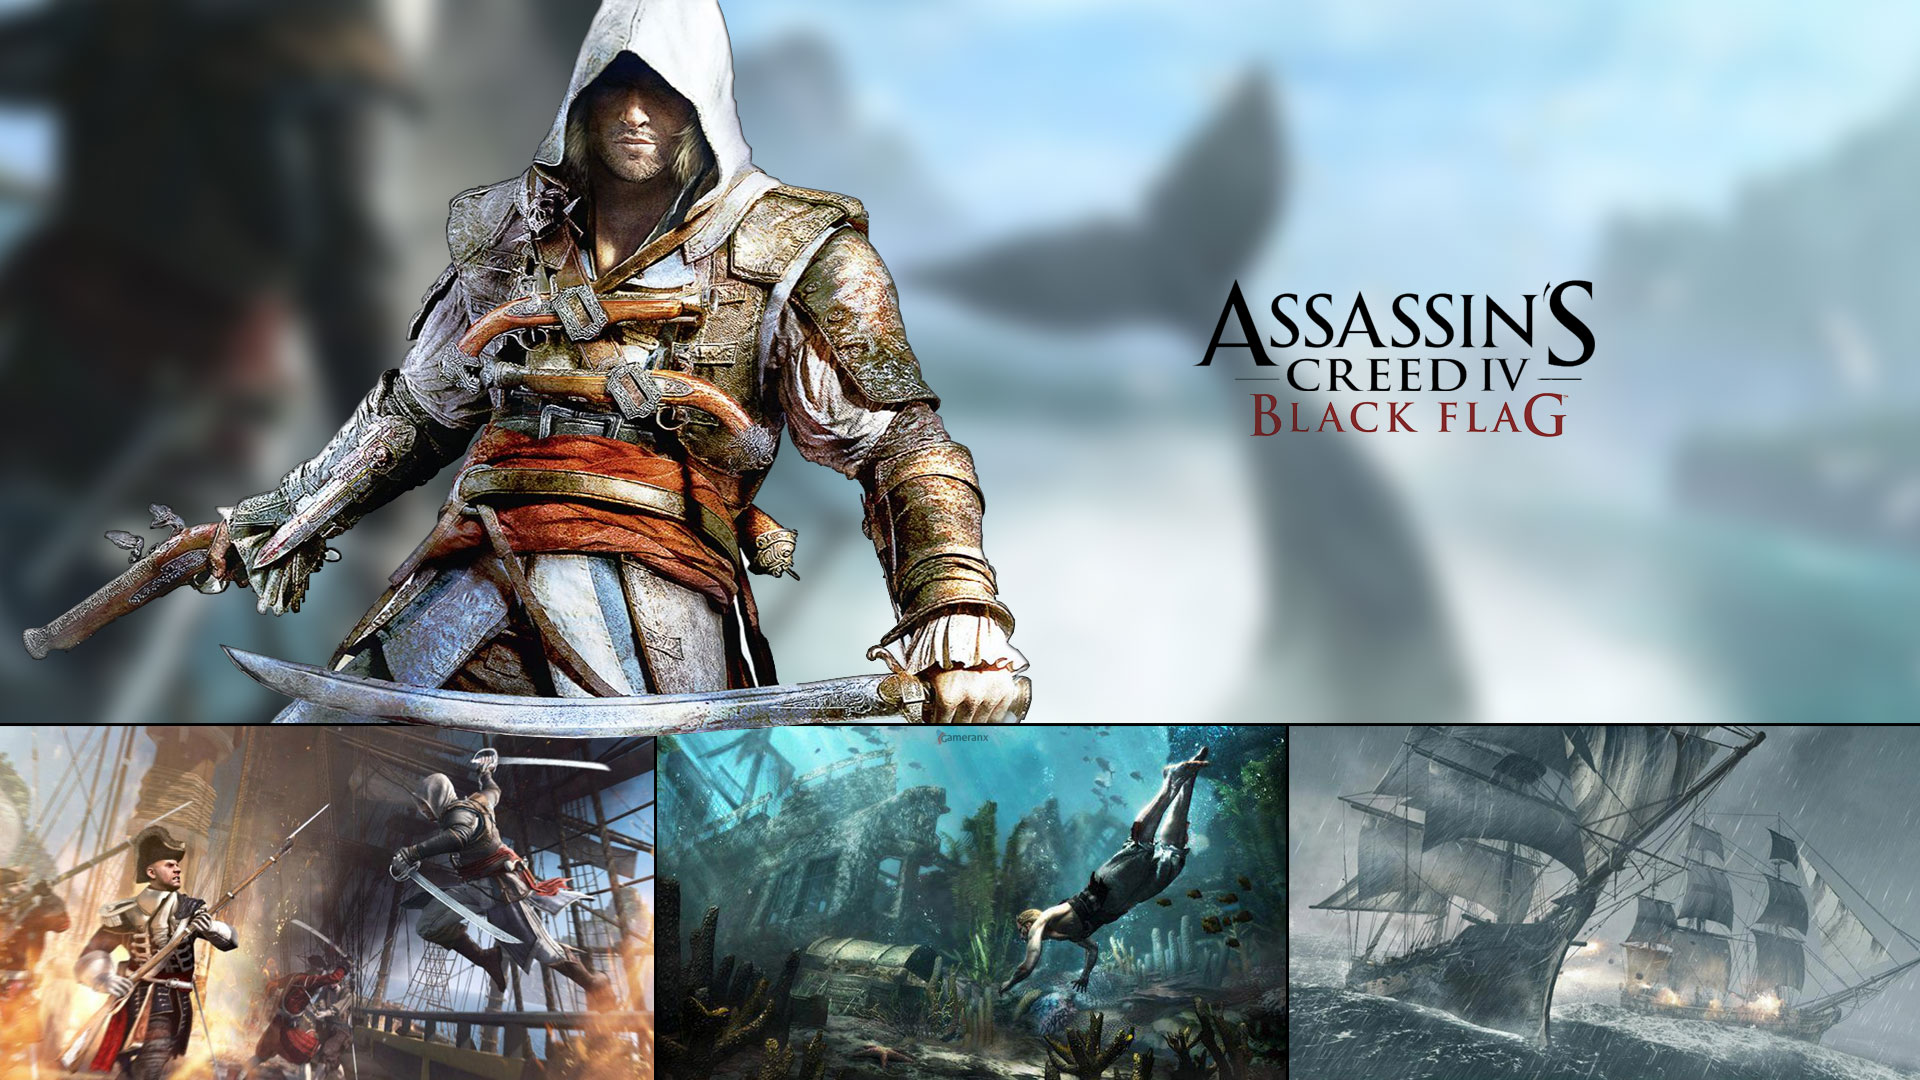 Free Download Assassins Creed 4 Wallpapers Hd Black Flag